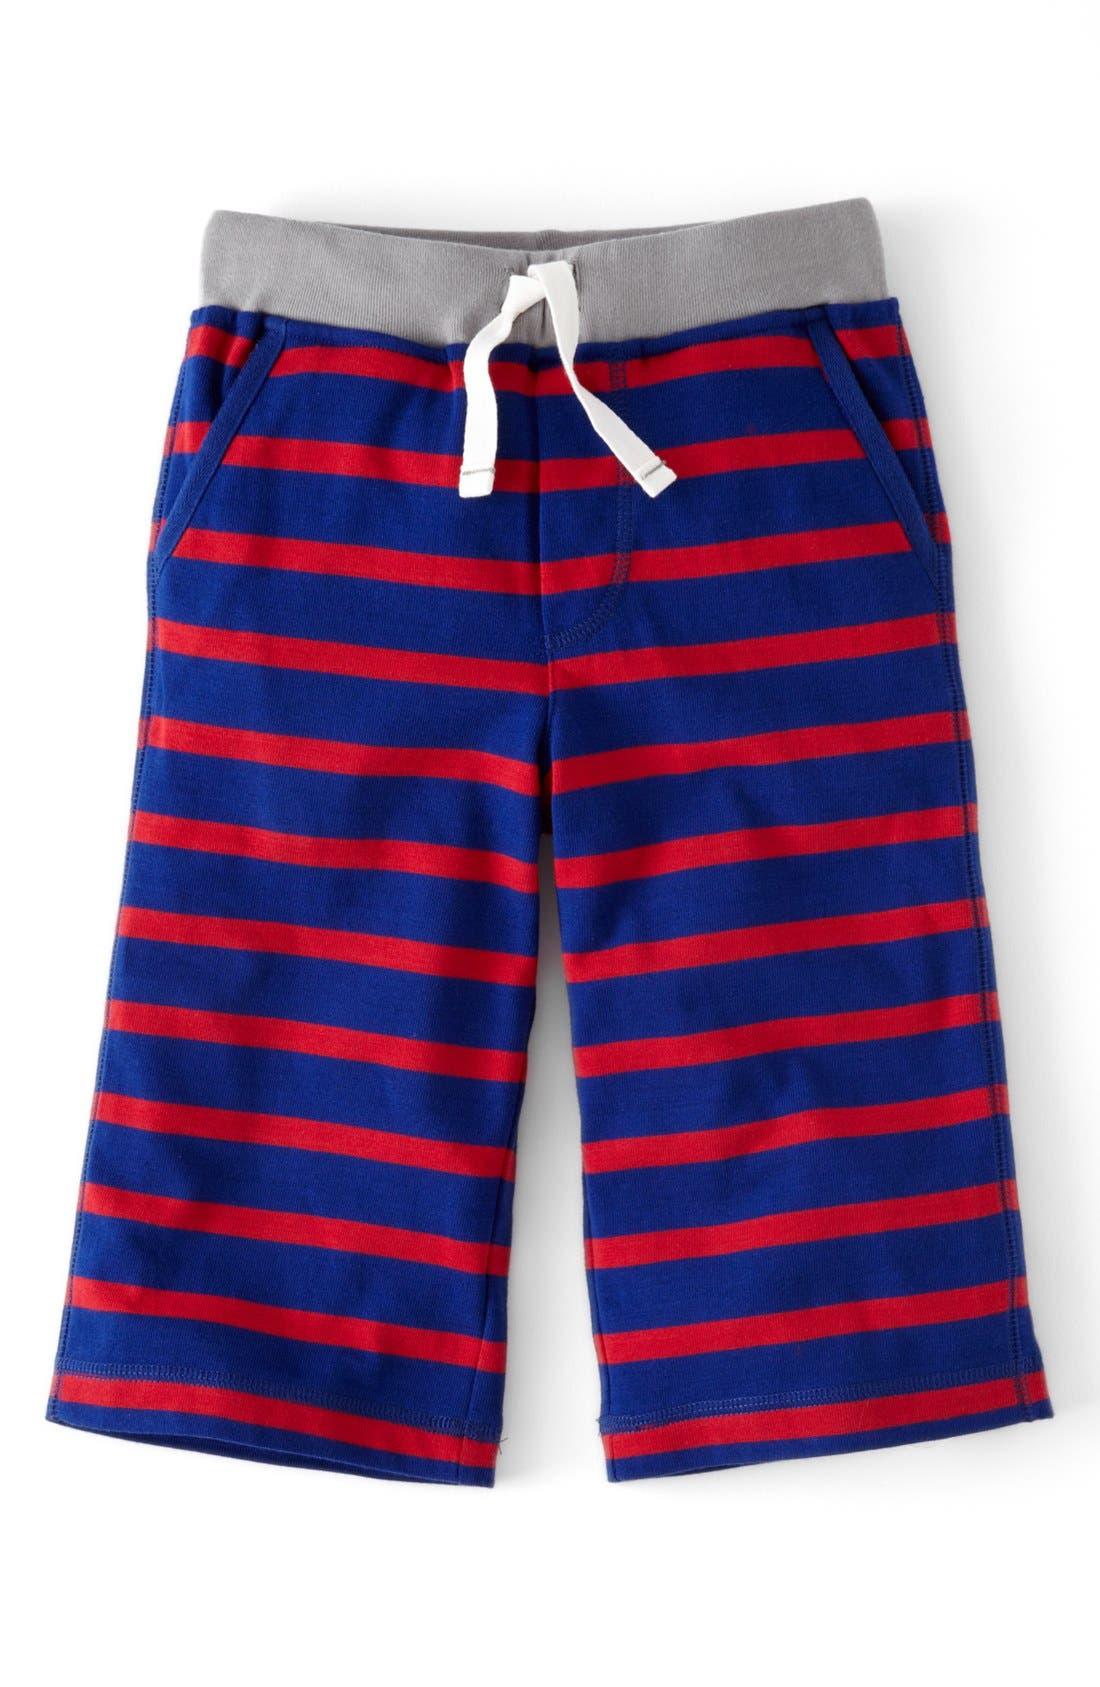 Alternate Image 1 Selected - Mini Boden 'Baggies' Jersey Shorts (Toddler Boys, Little Boys & Big Boys)